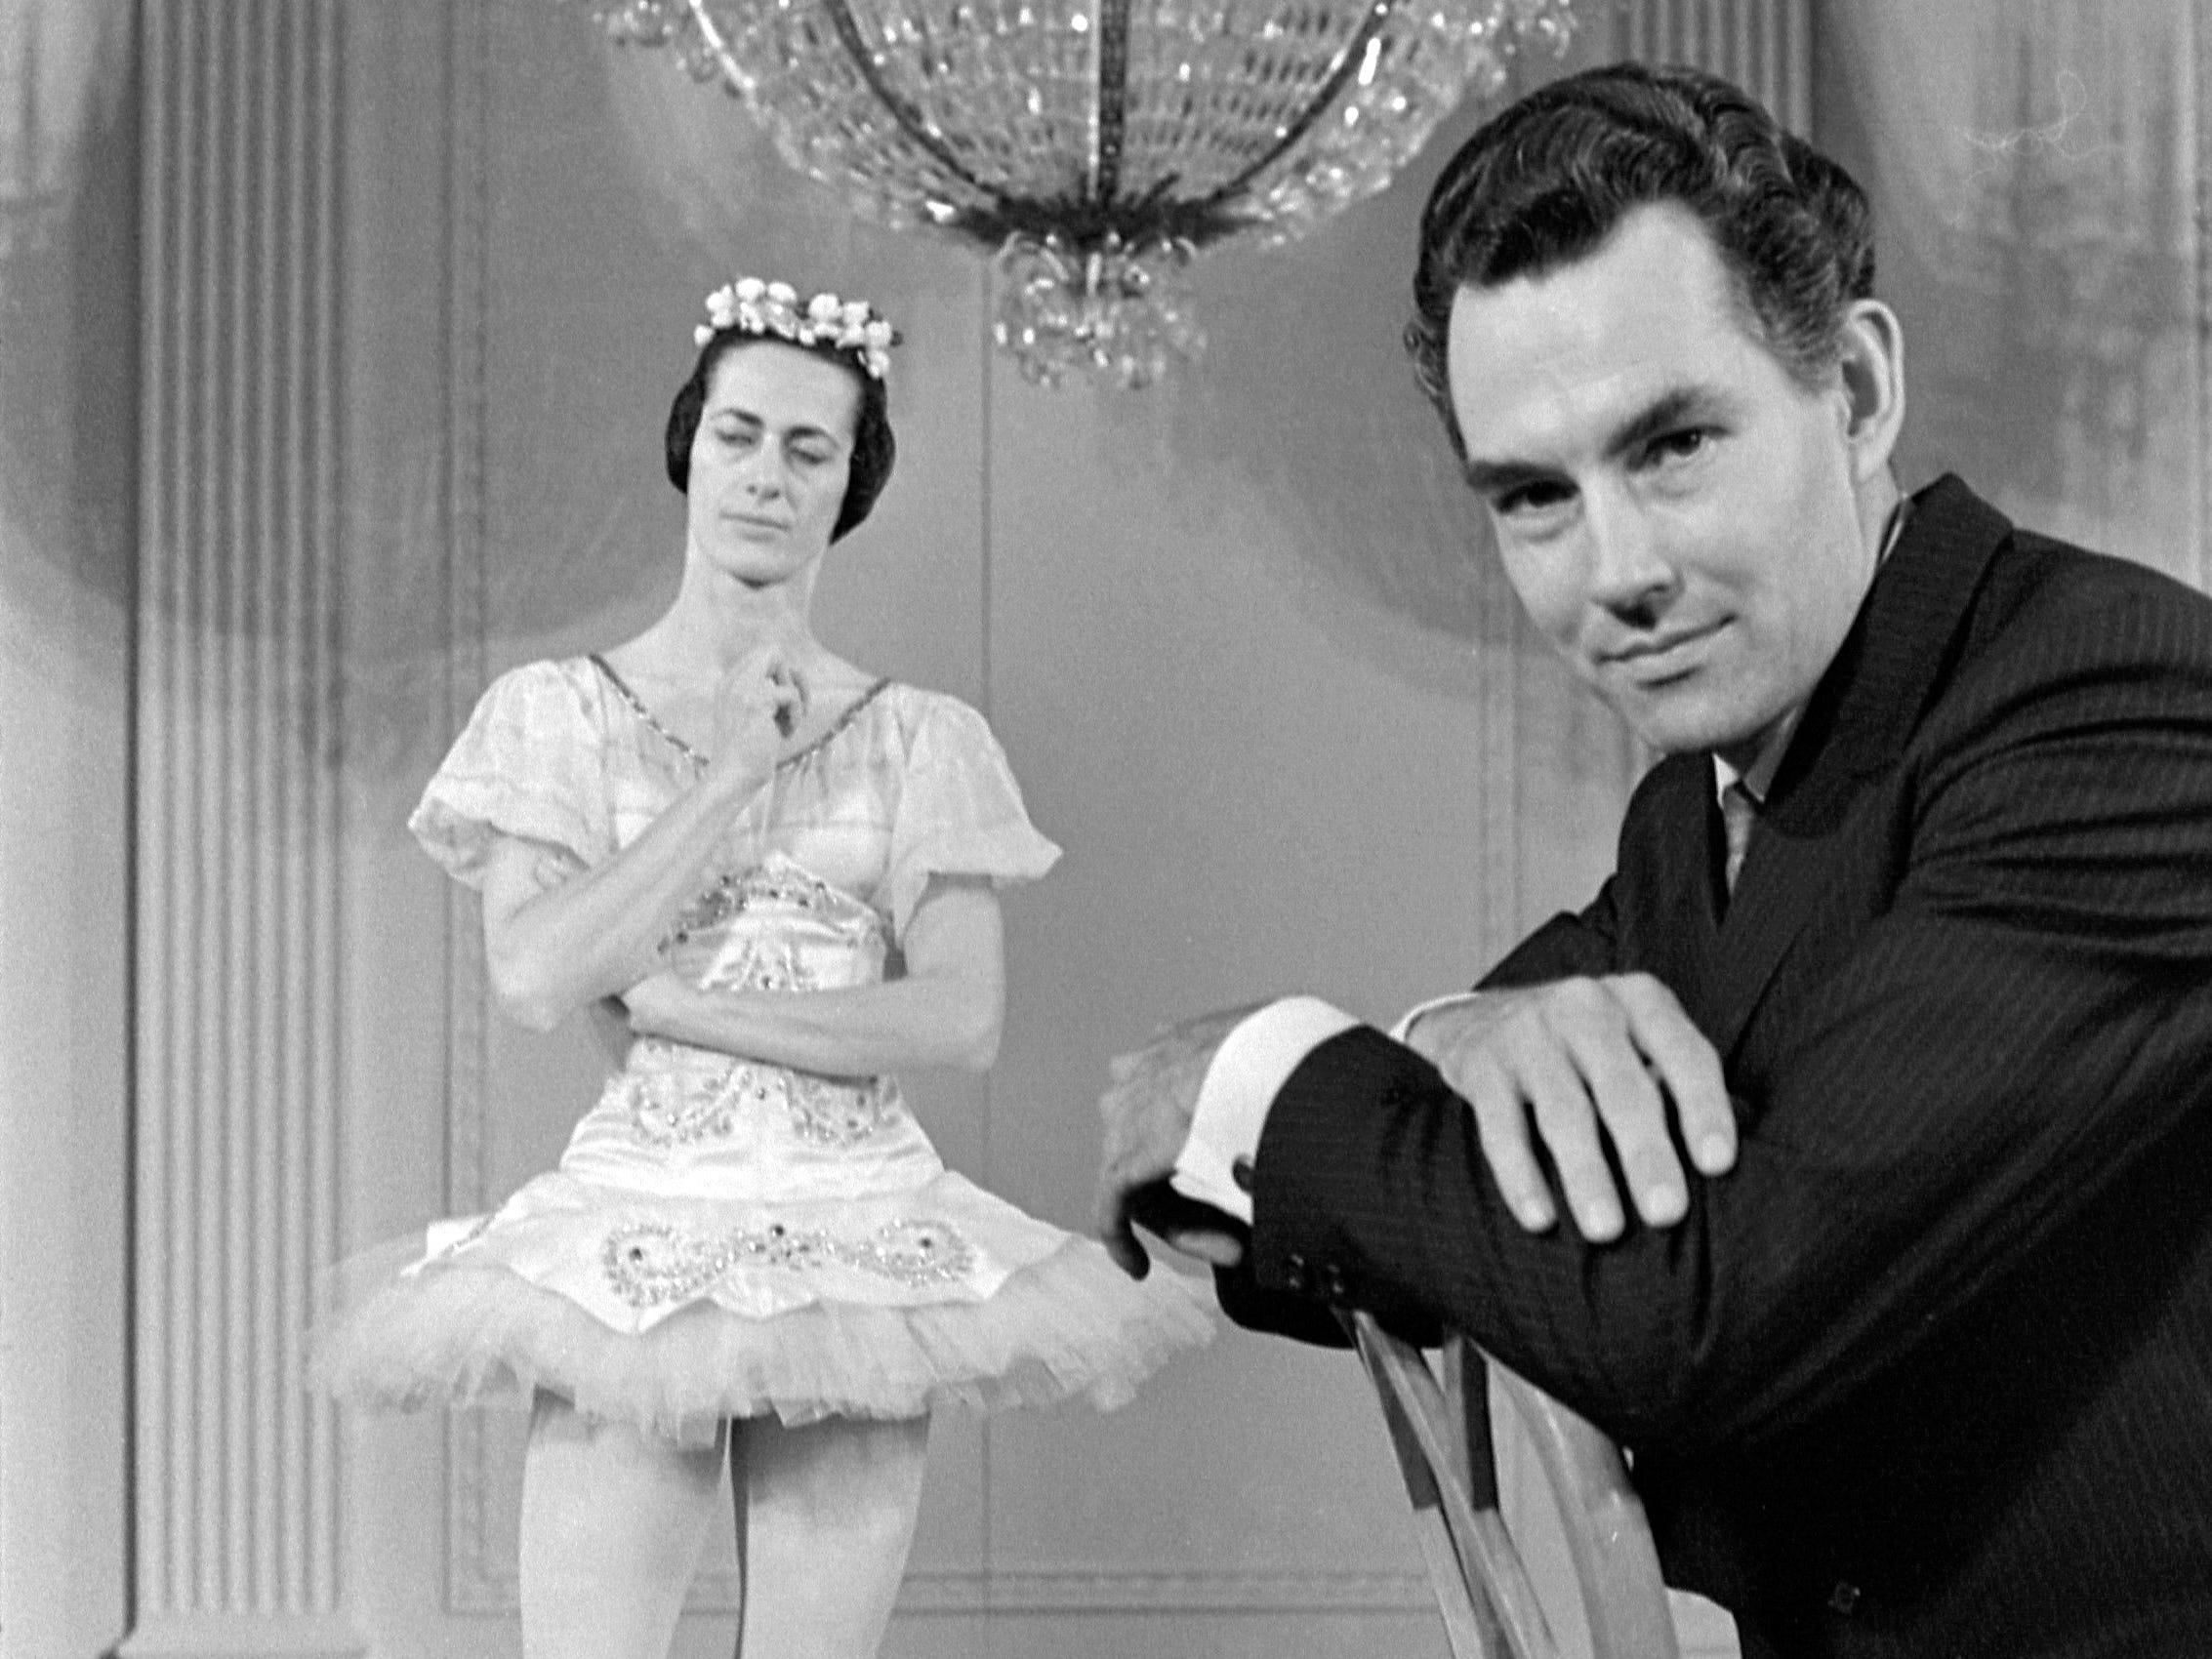 Kenneth Schermerhorn, the new conductor and music director of the Milwaukee Symphony Orchestra, and his wife, ballerina Lupe Serrano, pose beneath a chandelier in the East Room of the White House on May 26, 1968. They appeared with the American Ballet Theatre, which performed after a state dinner at the White House; Schermerhorn directed the Marine Band. This photo was published int he May 28, 1968, Milwaukee Journal.